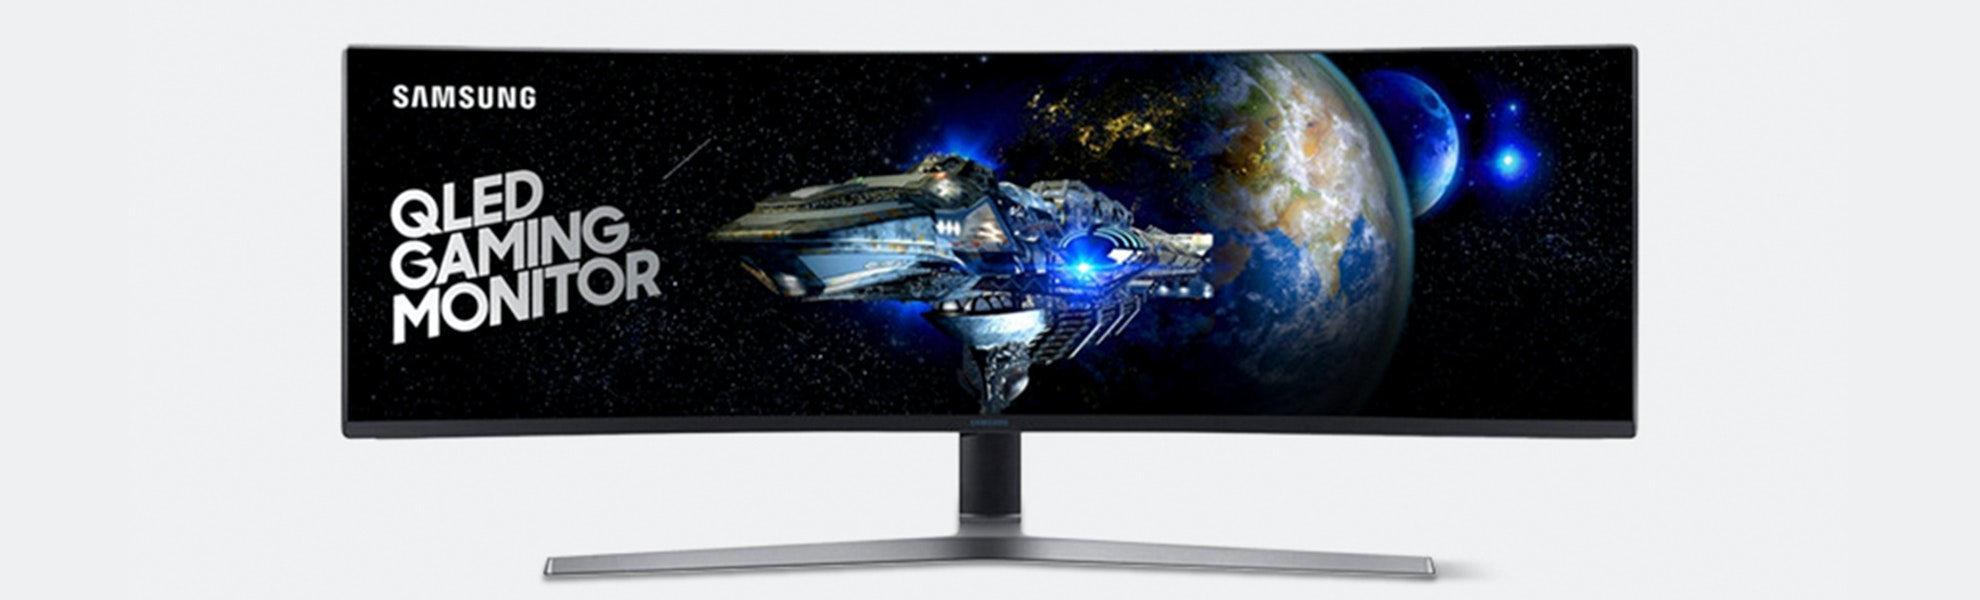 Samsung 49-Inch QLED HDR 144hz Gaming Monitor